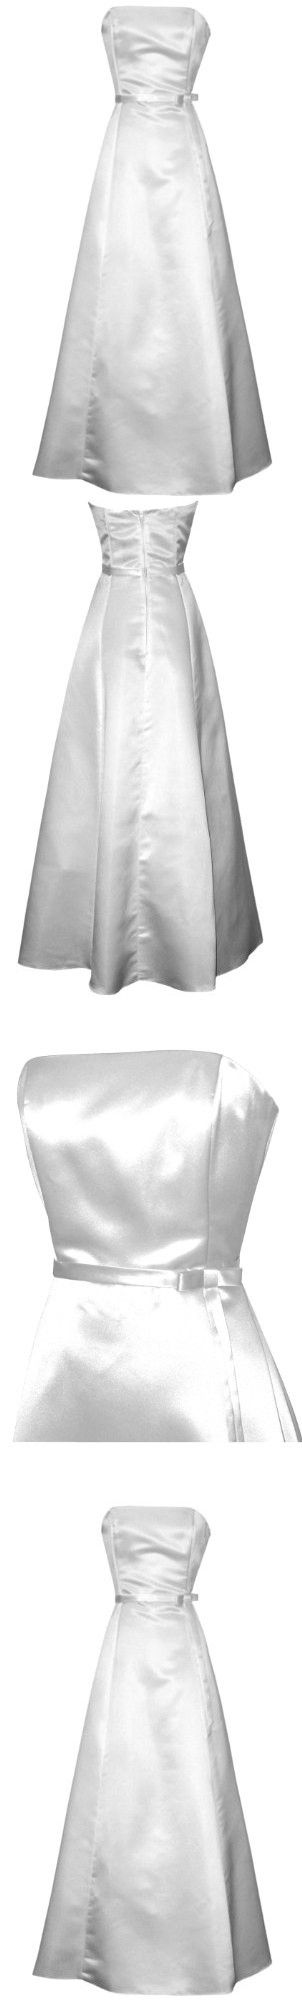 50's Strapless Satin Long Gown Bridesmaid Prom Dress Holiday Formal Junior Plus Size, 3X, White